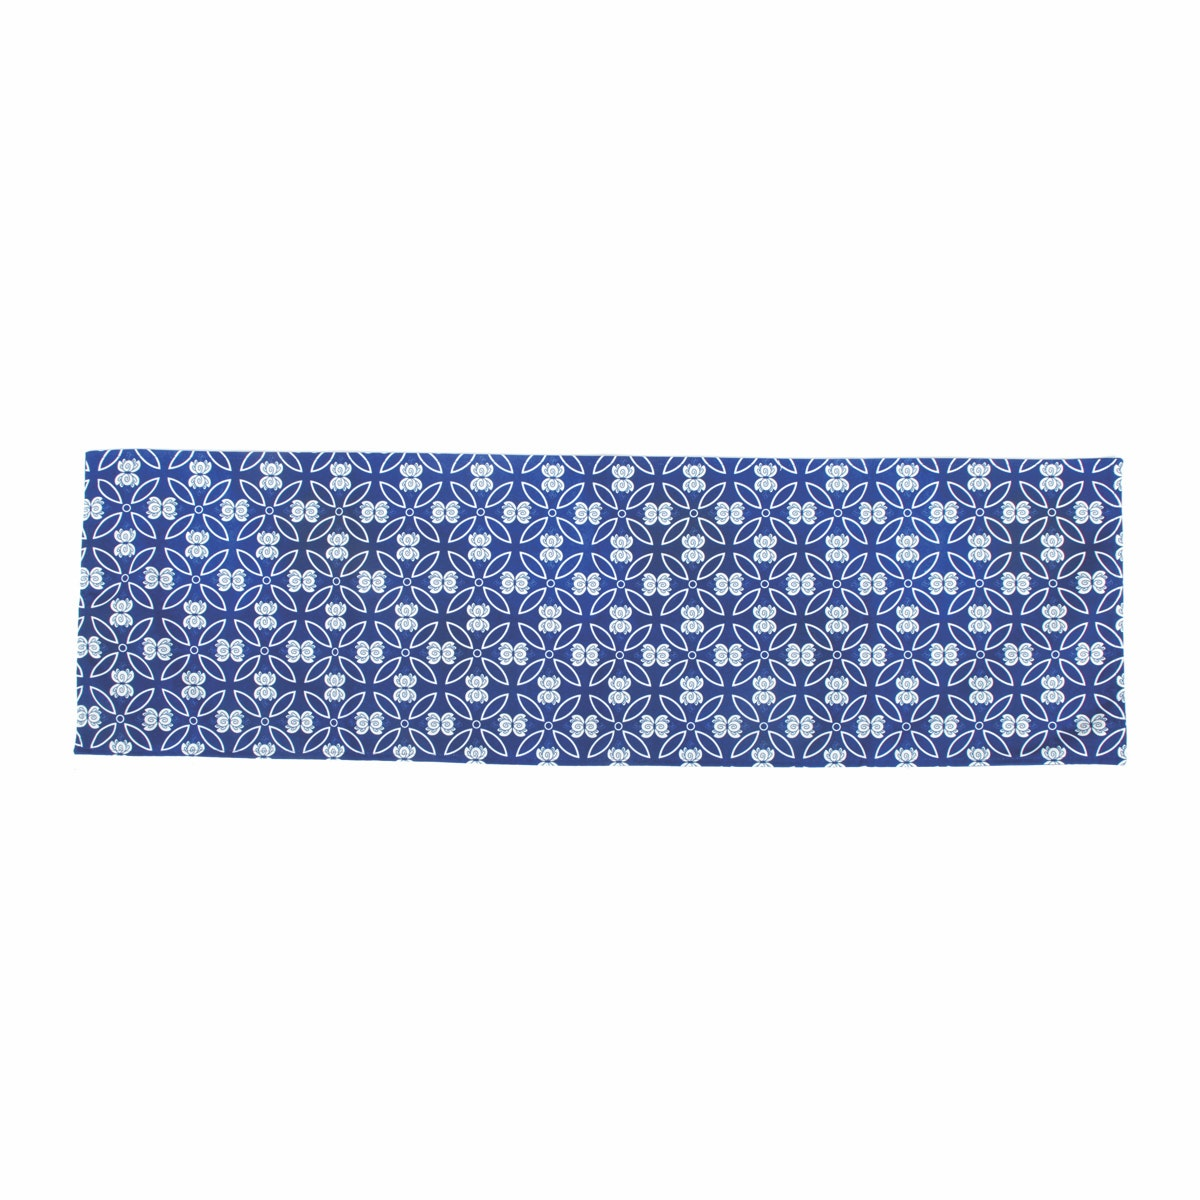 Glerry Home Decor Dew Blue Table Runner 200x30cm